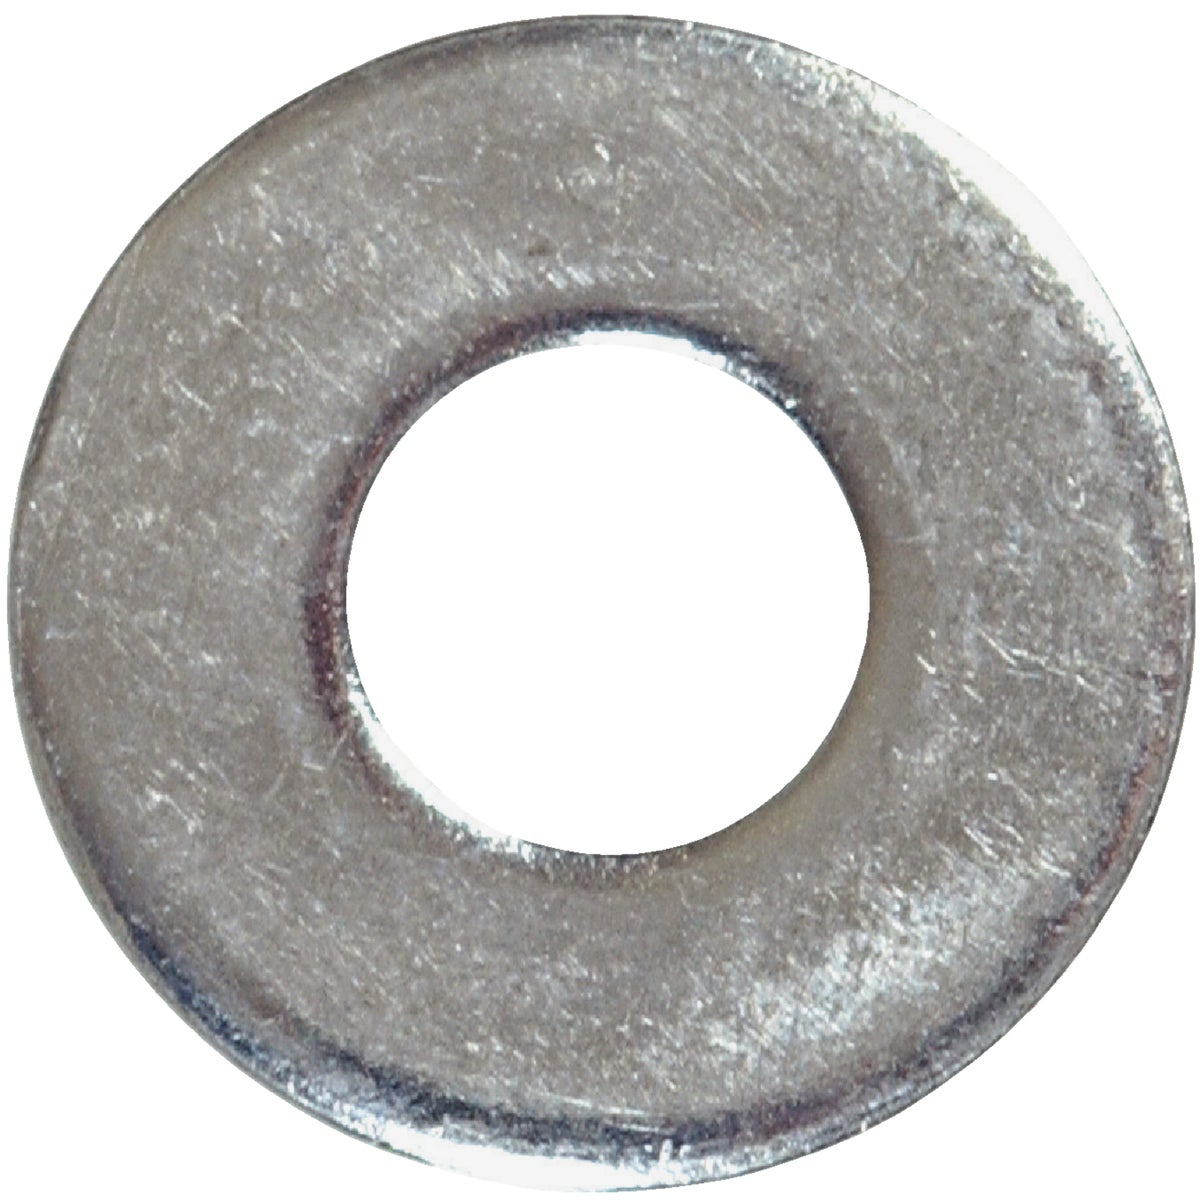 "100PC 5/16""SAE FL WASHER - 280058 by Hillman Fastener"